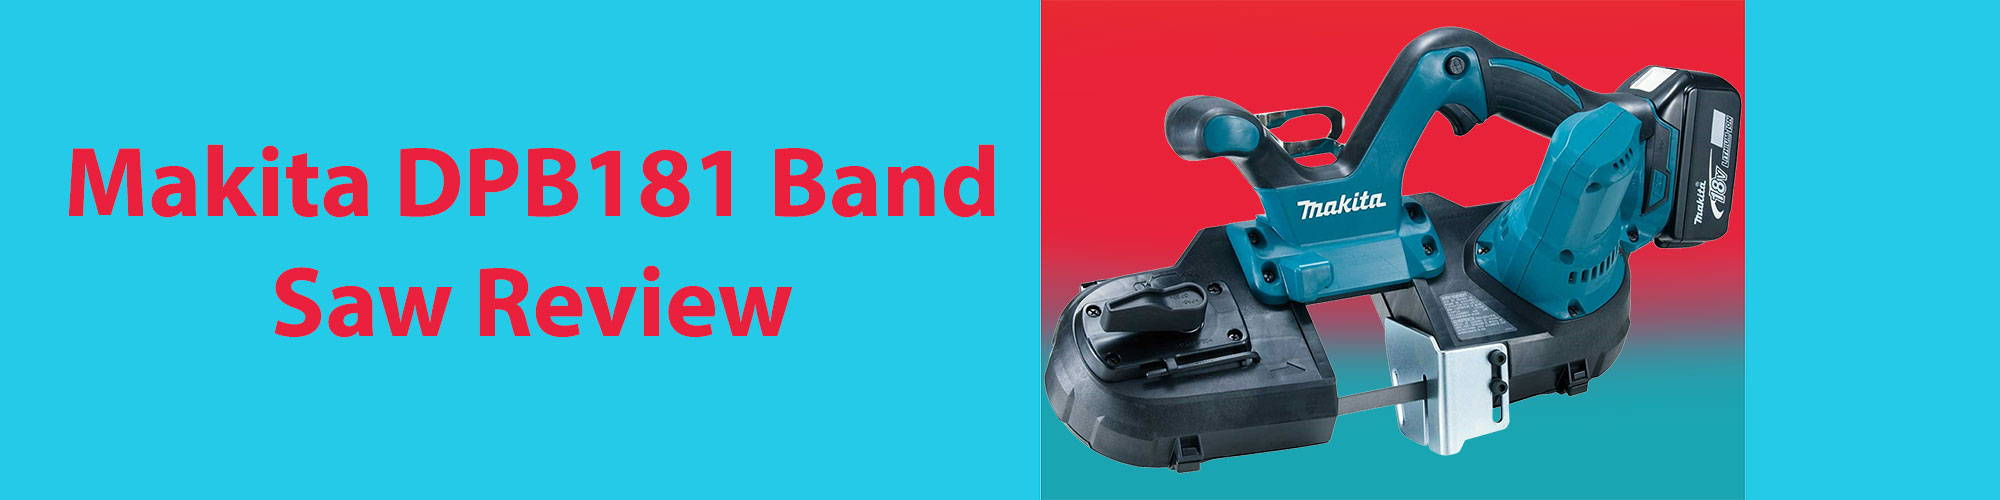 makita dpb181 band saw review